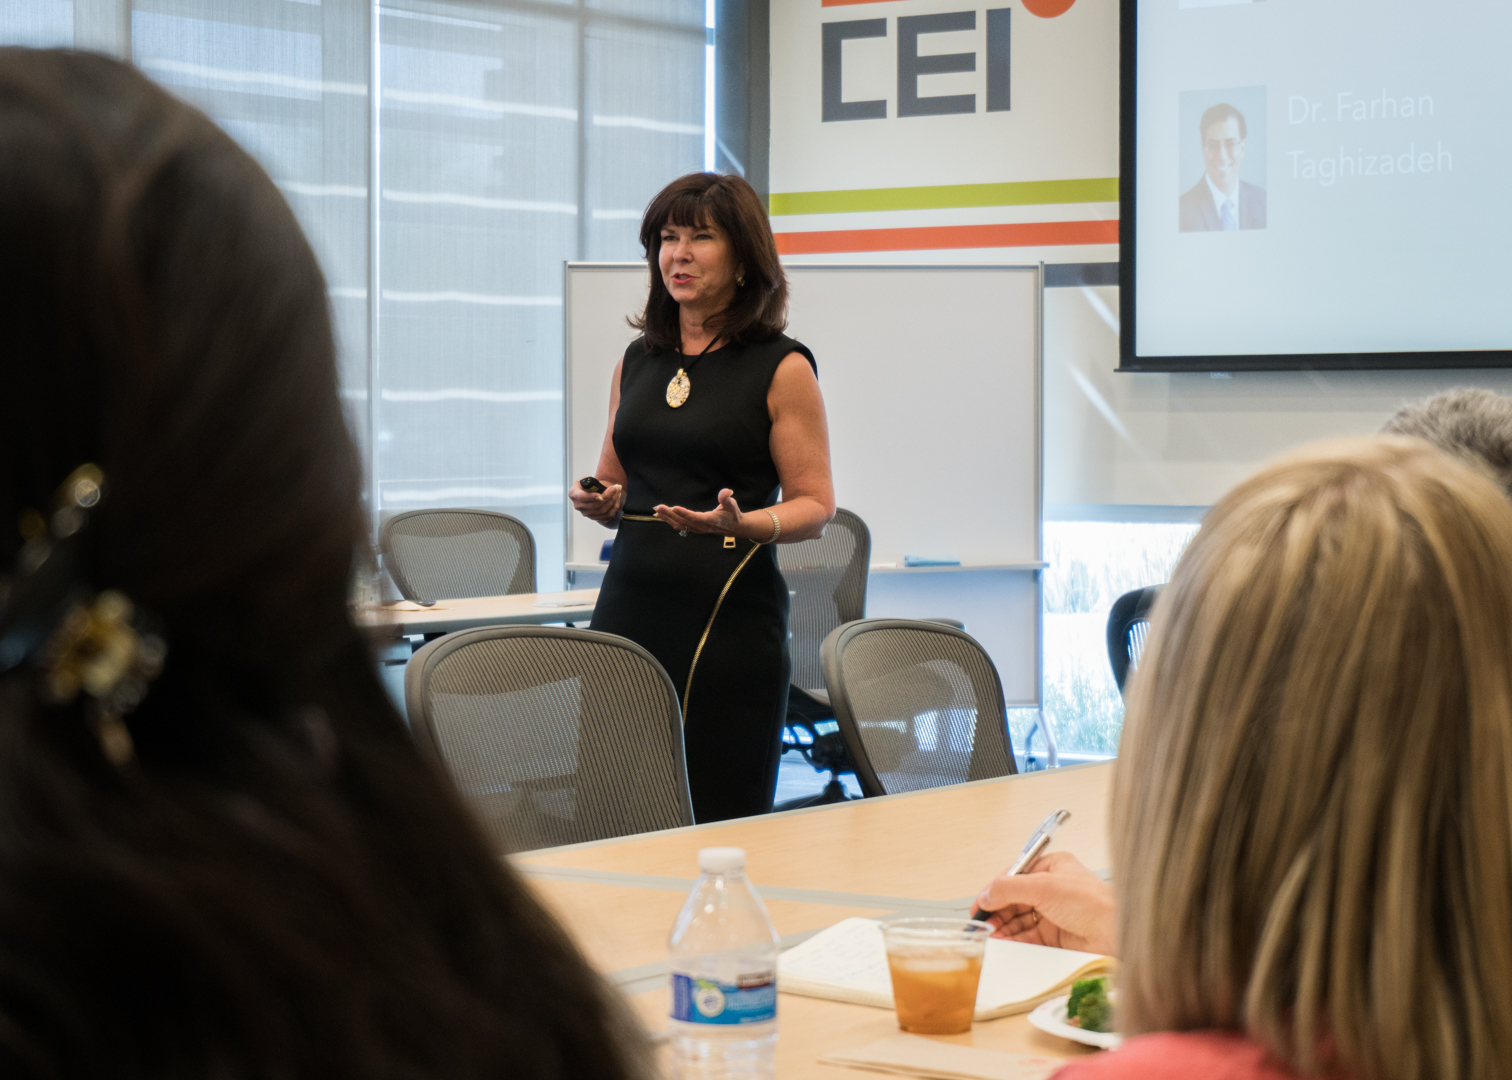 CEI brings in  industry experts (like MaryAnn Guerra, seen above) to share advice and information at our monthly Founders Forum.